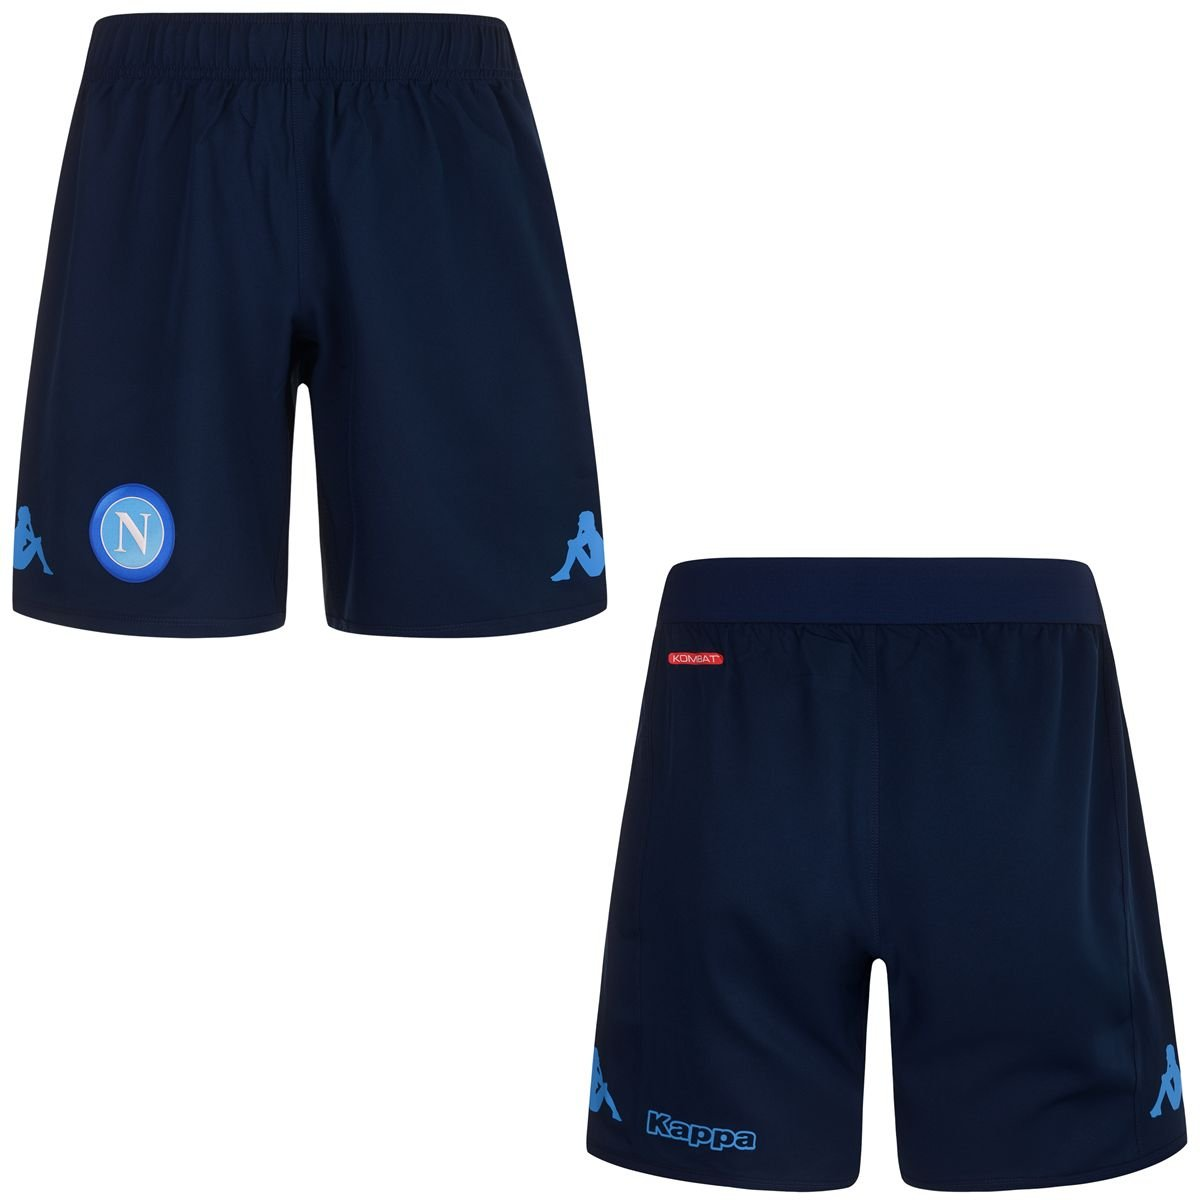 2017-2018 Napoli Kappa Third Shorts (Navy) B074C2LFCVNavy Large Adults